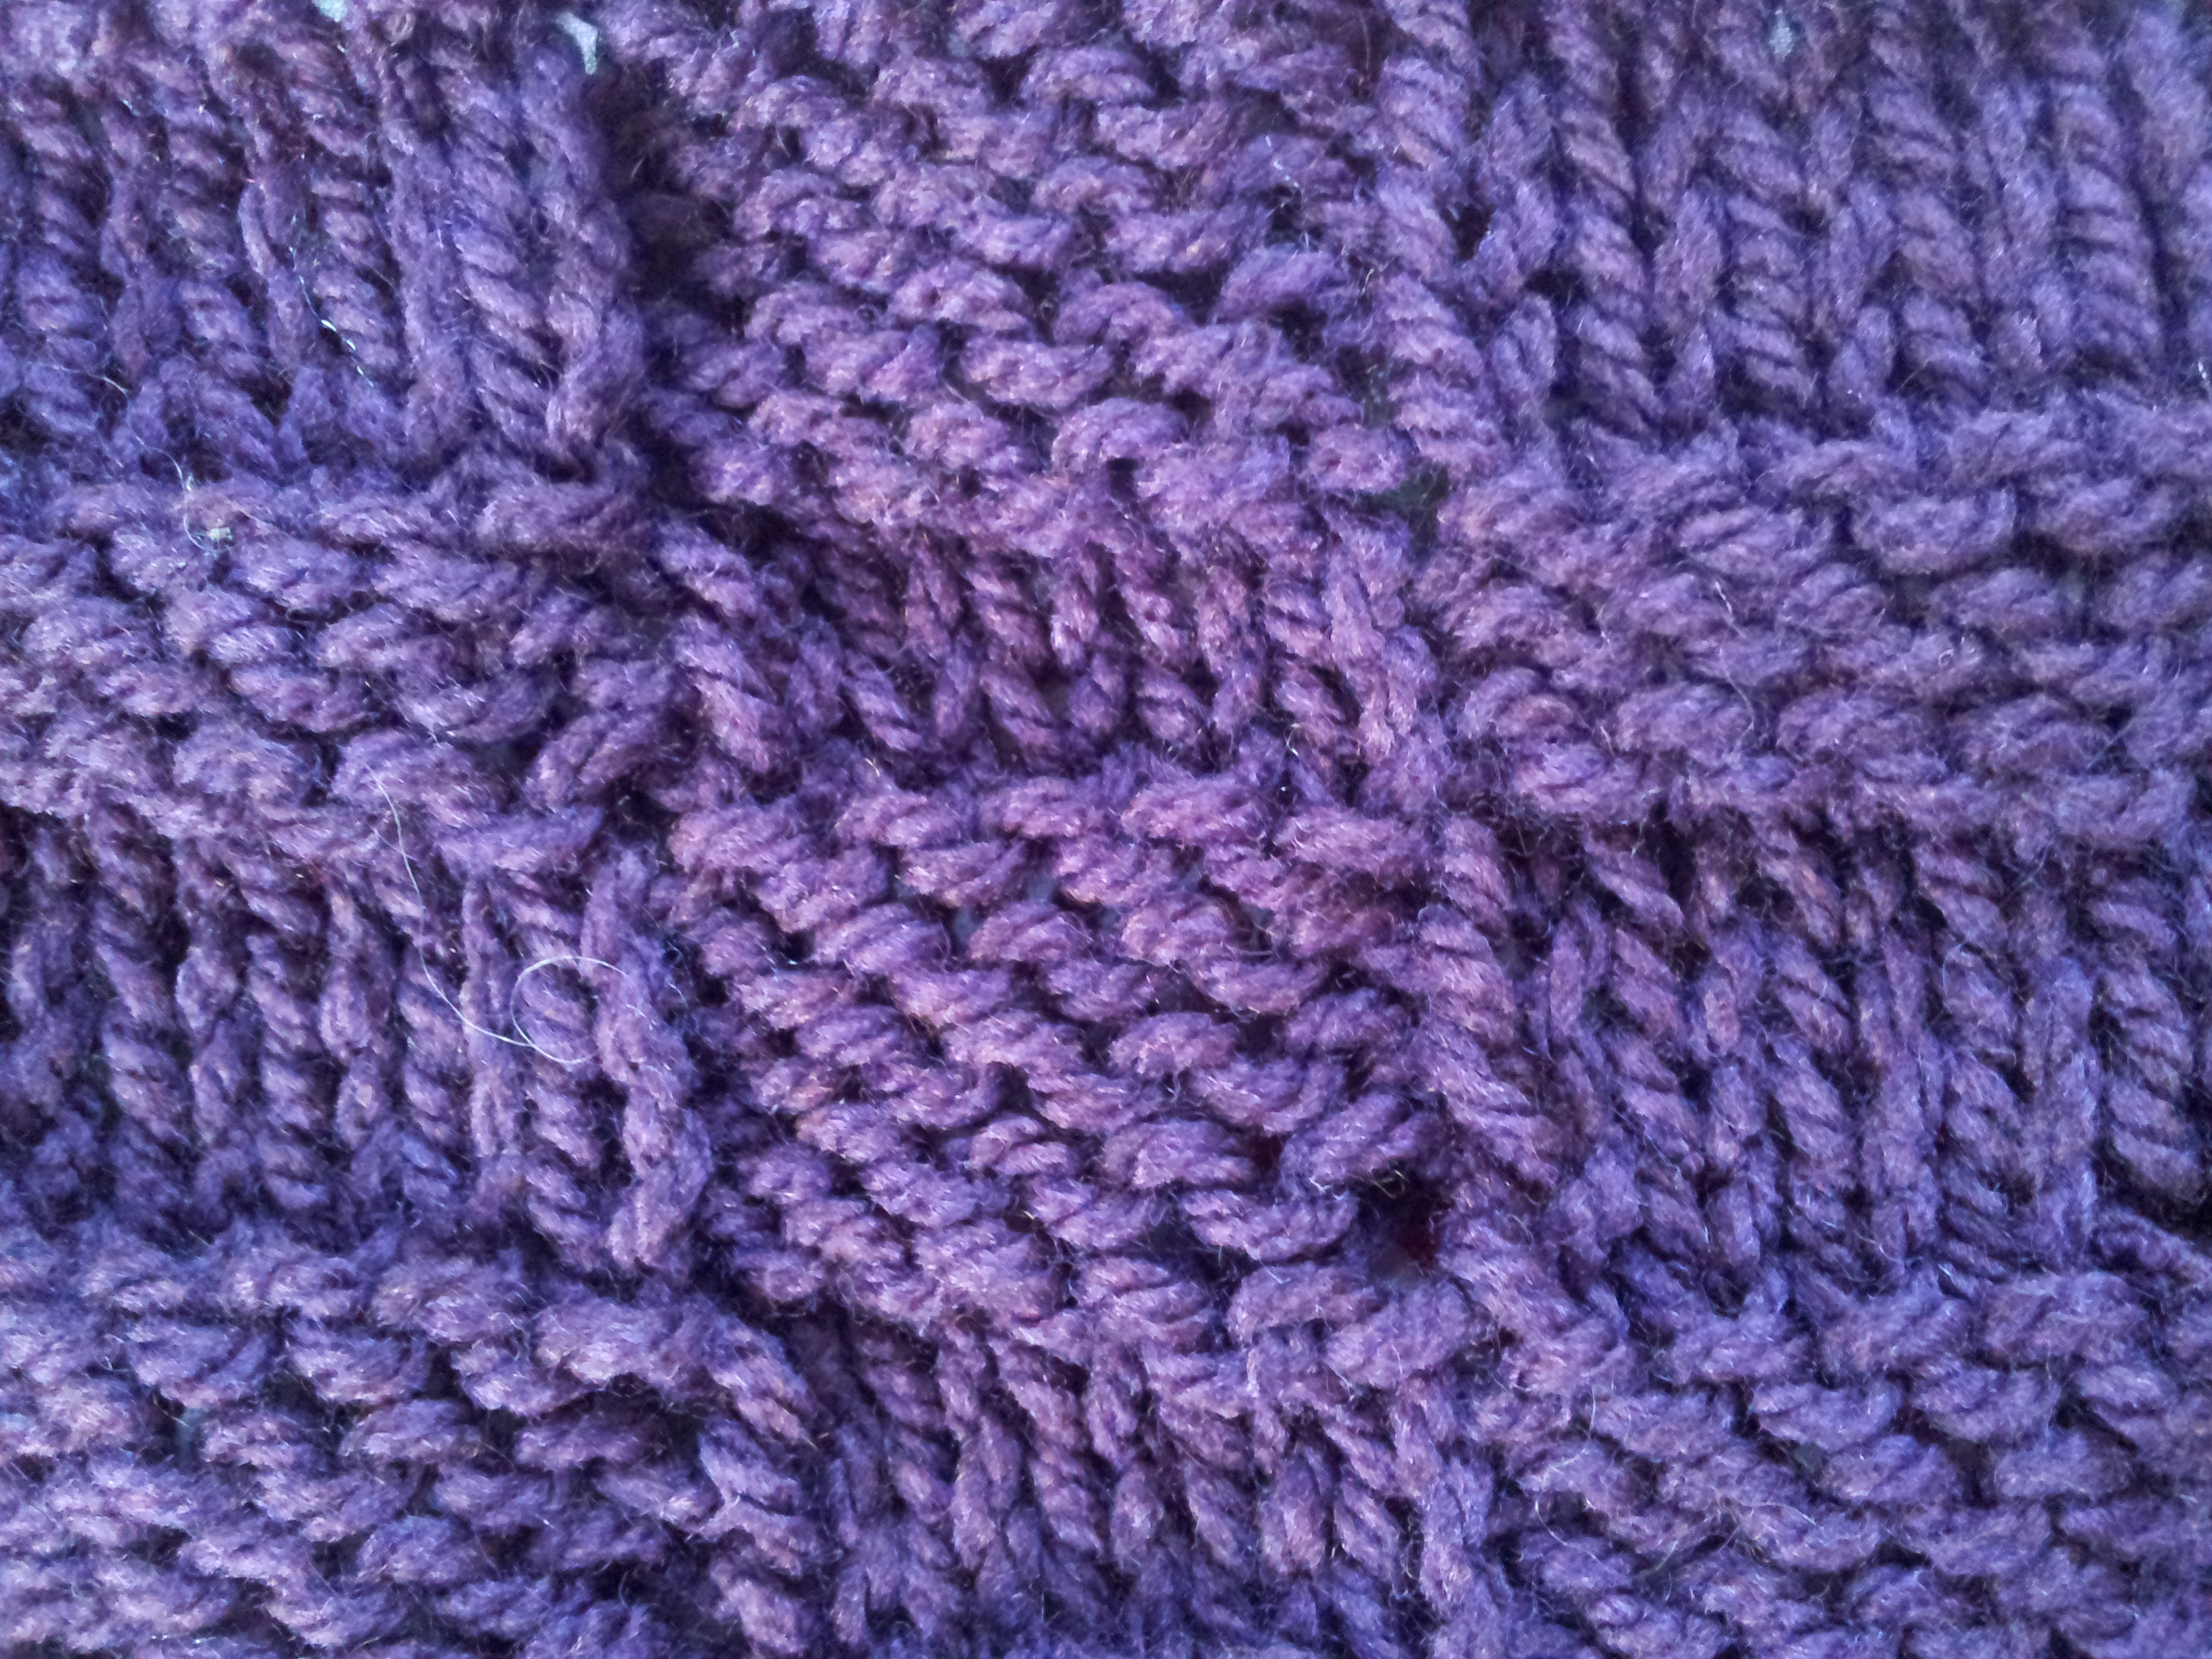 Knitting Easy Stitches : Basic knitted fabrics thestitchsharer